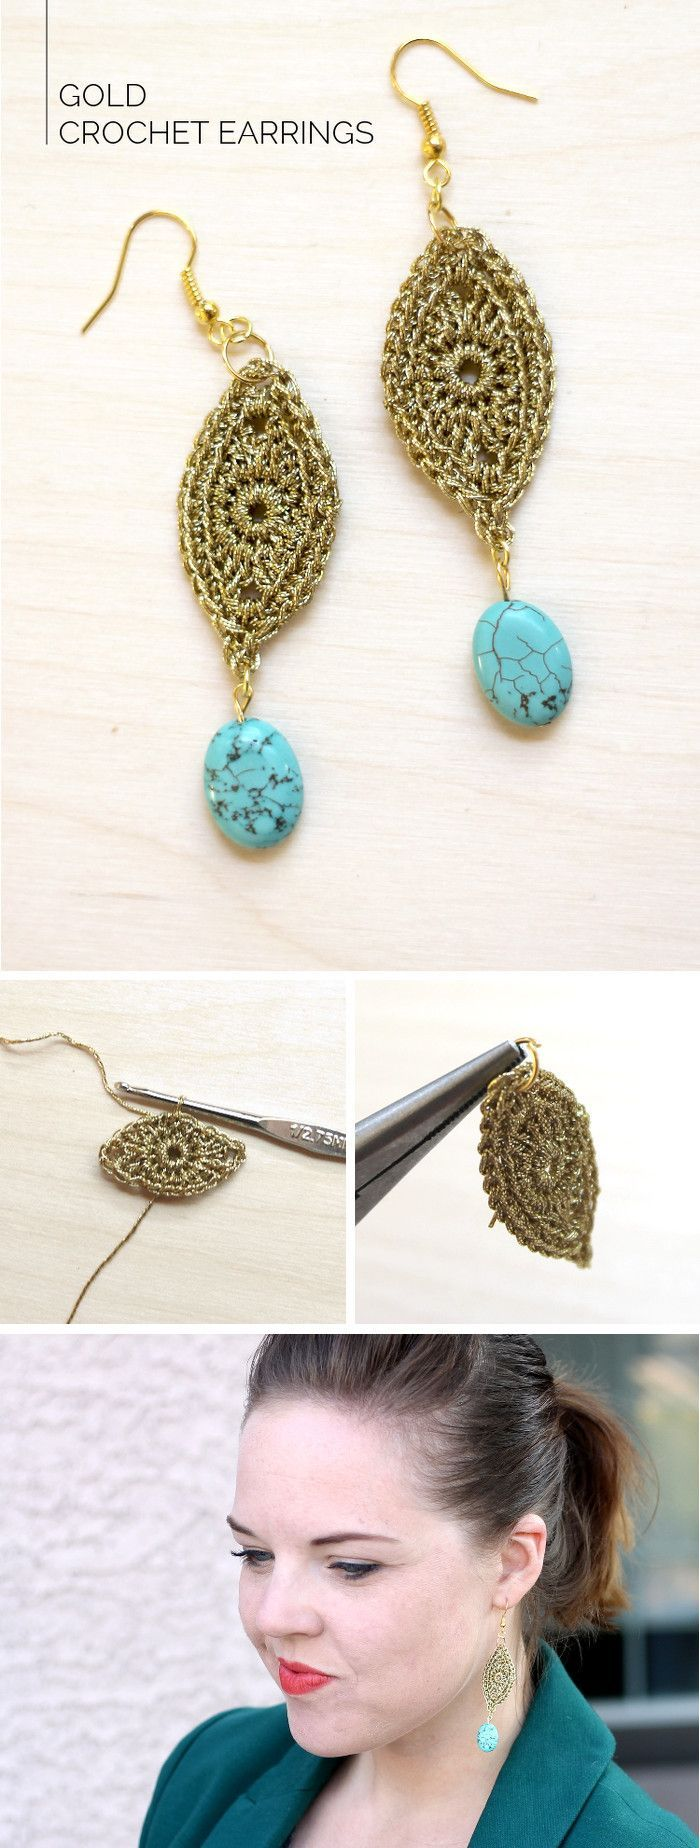 Would you believe these earrings are crocheted?! Get the full tutorial at http://persialou.com